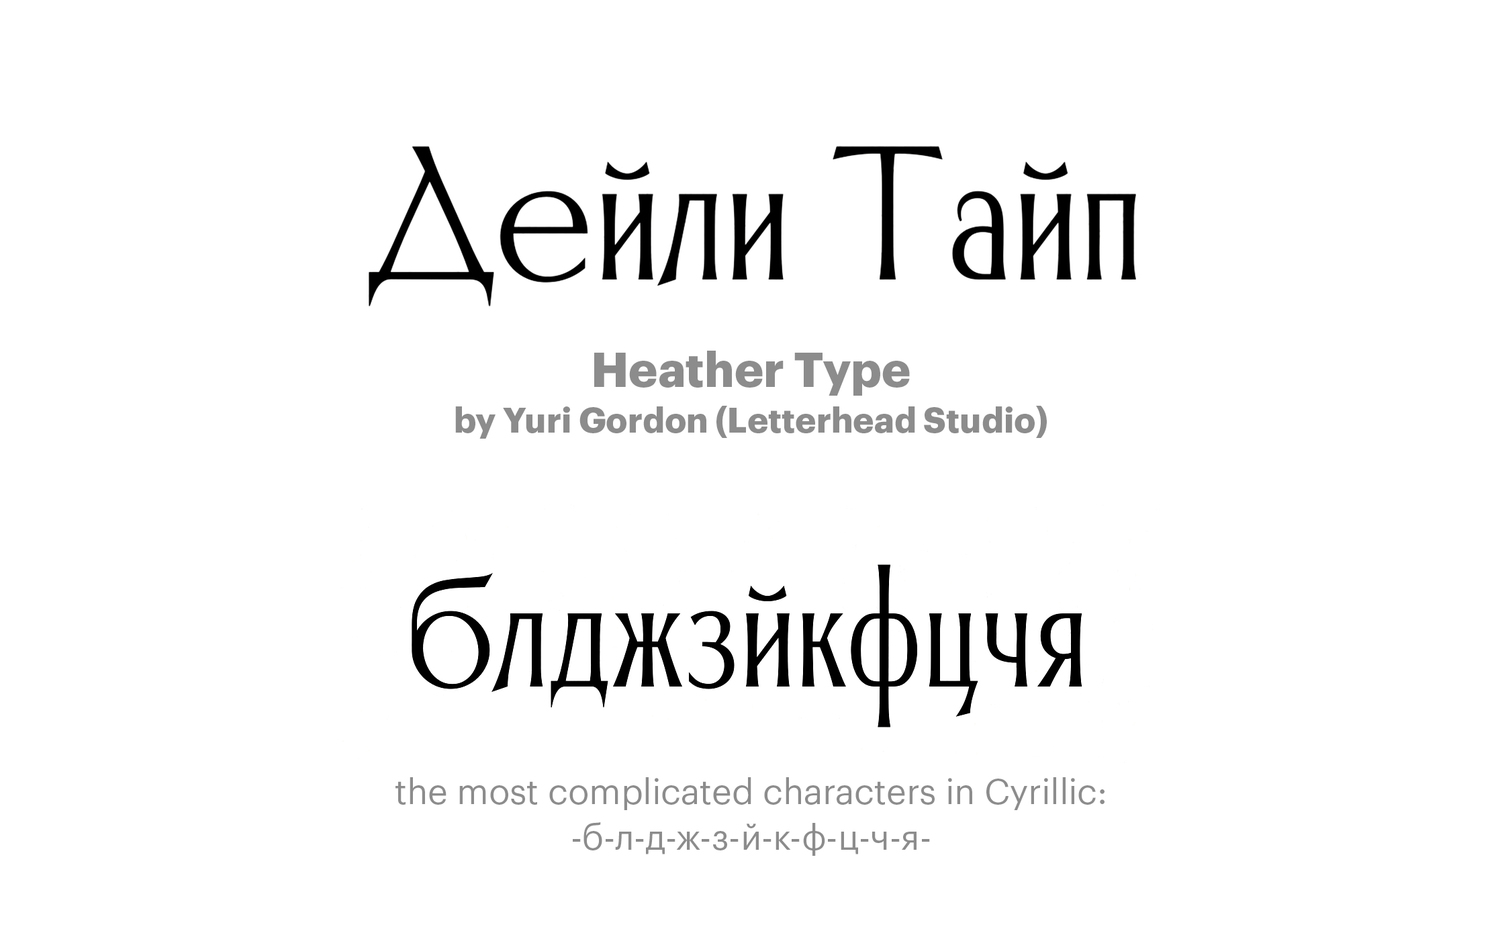 Heather-Type-by-Yuri-Gordon-(Letterhead-Studio)